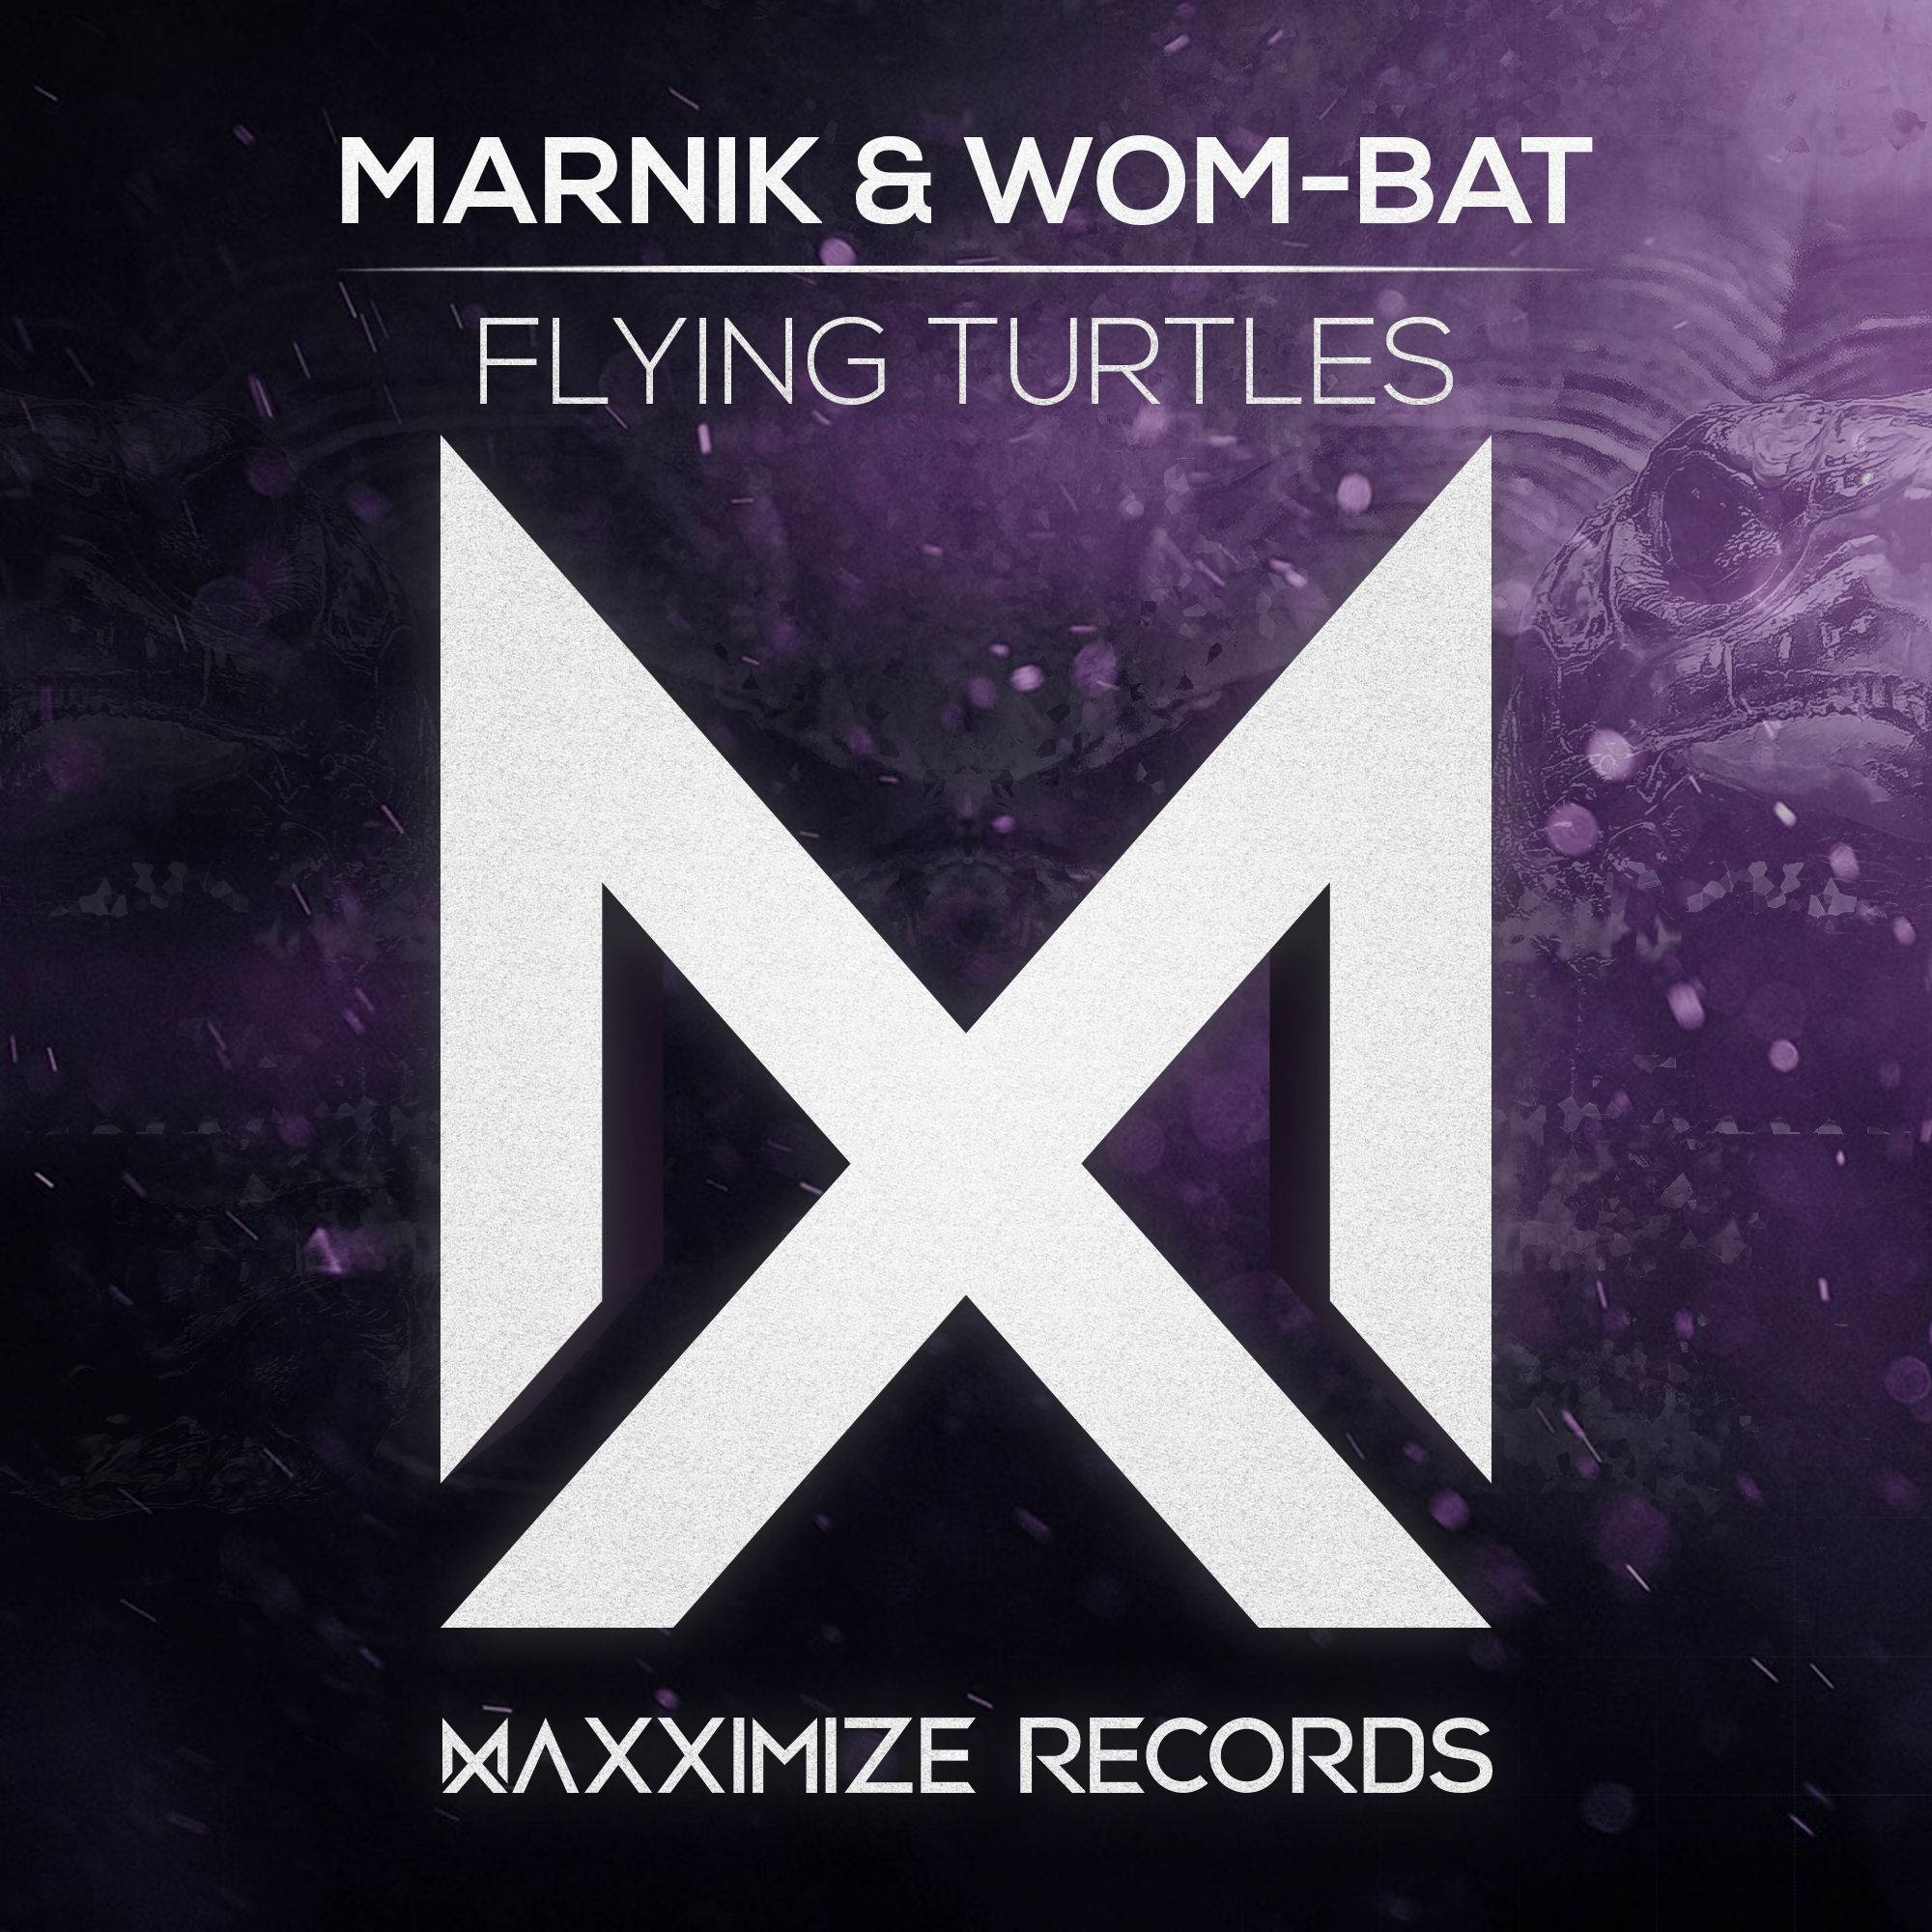 maxx007_marnik_wom-bat_flying_turtles_cover_hr_v3-1.jpg